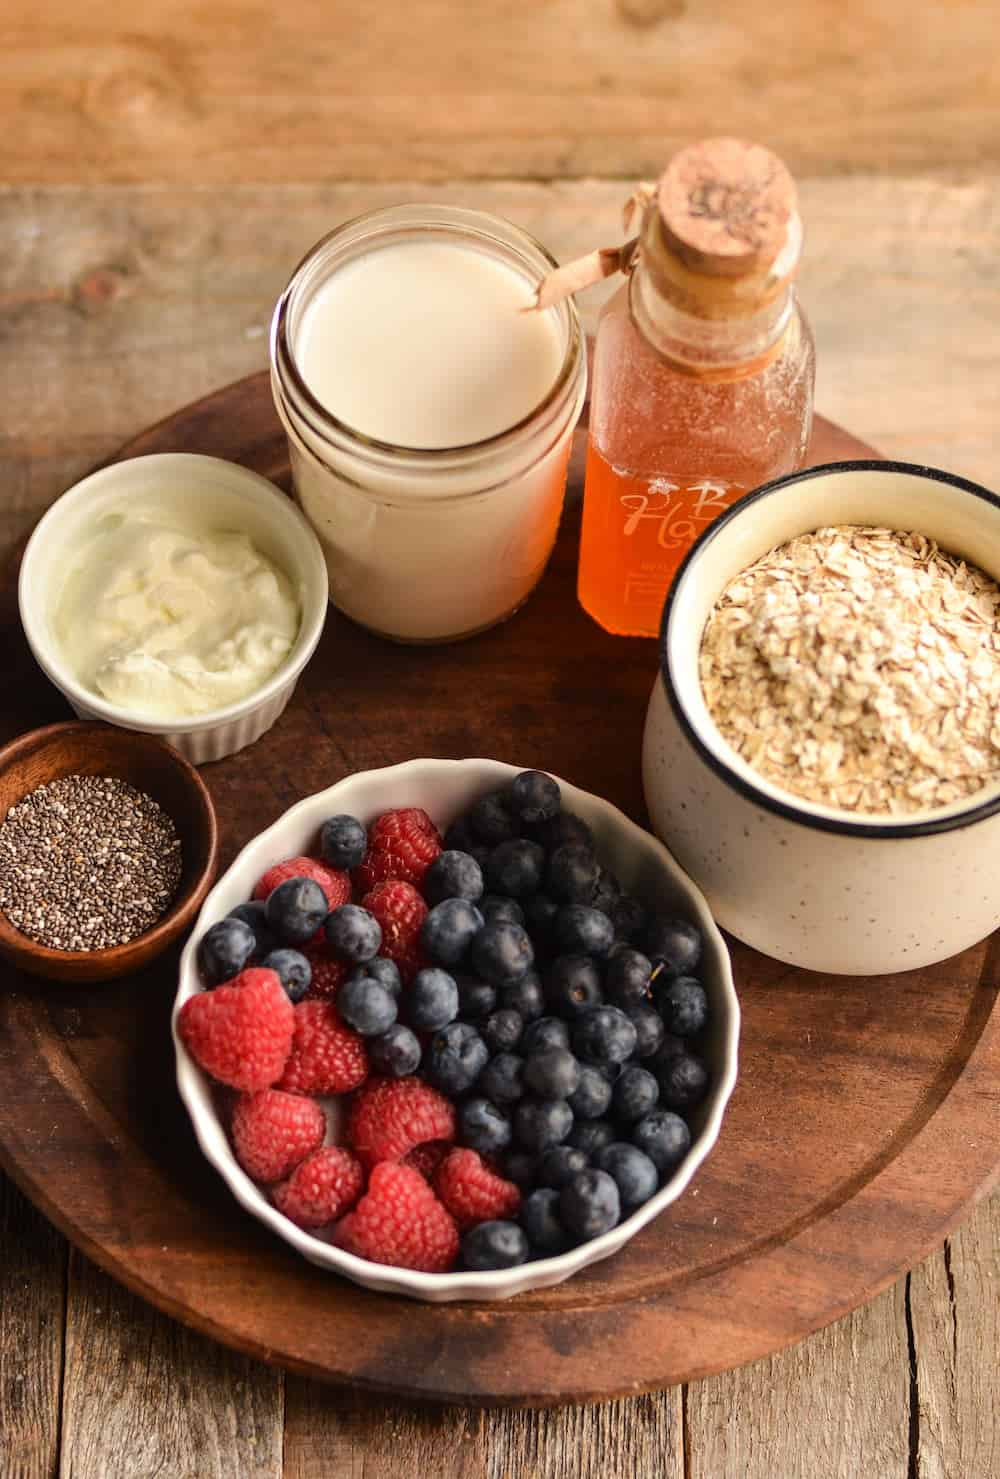 Get a good start in the morning with this delicious mixed berry oatmeal smoothie filled with fiber and protein! You can make it ahead if you like.